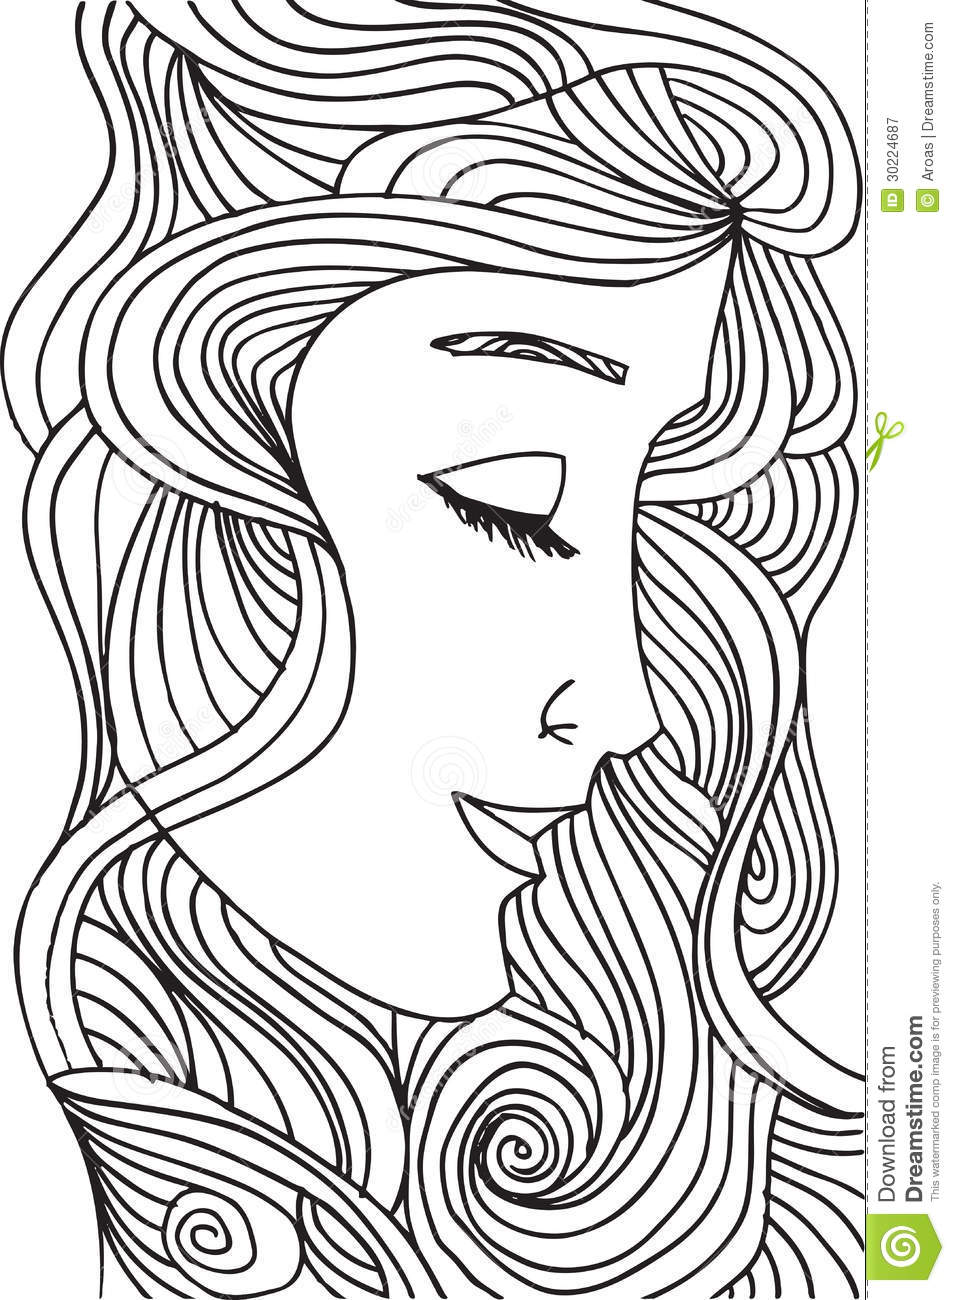 Abstract Face Line Drawing : Abstract sketch of woman face royalty free stock